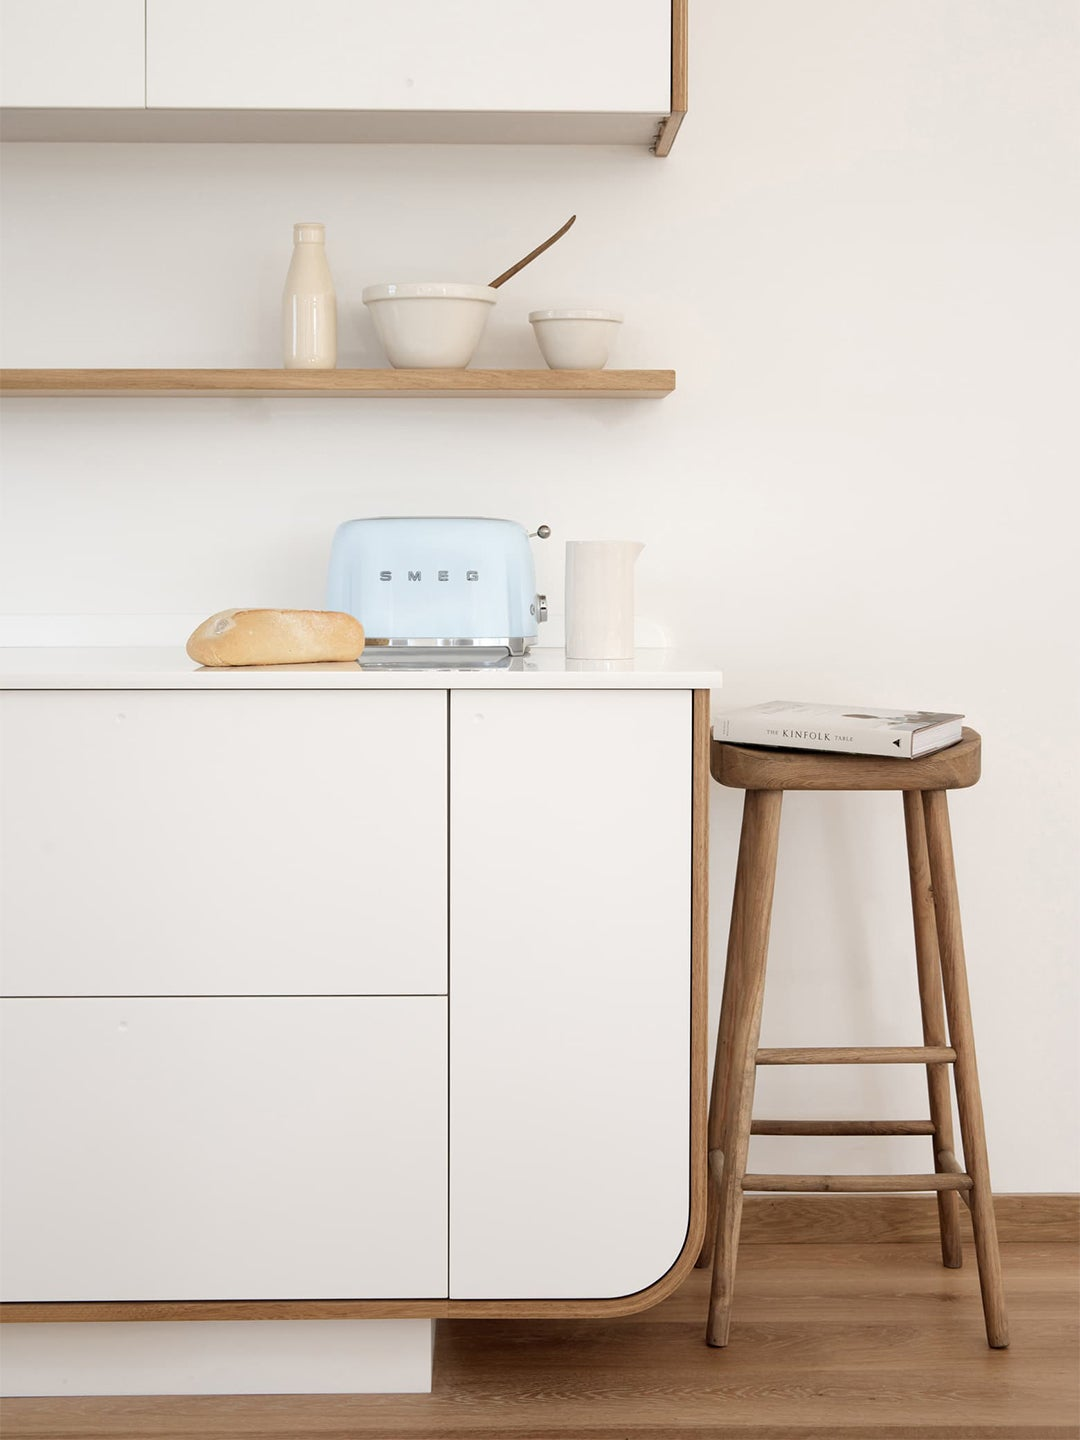 white kitchen counter with blue toaster